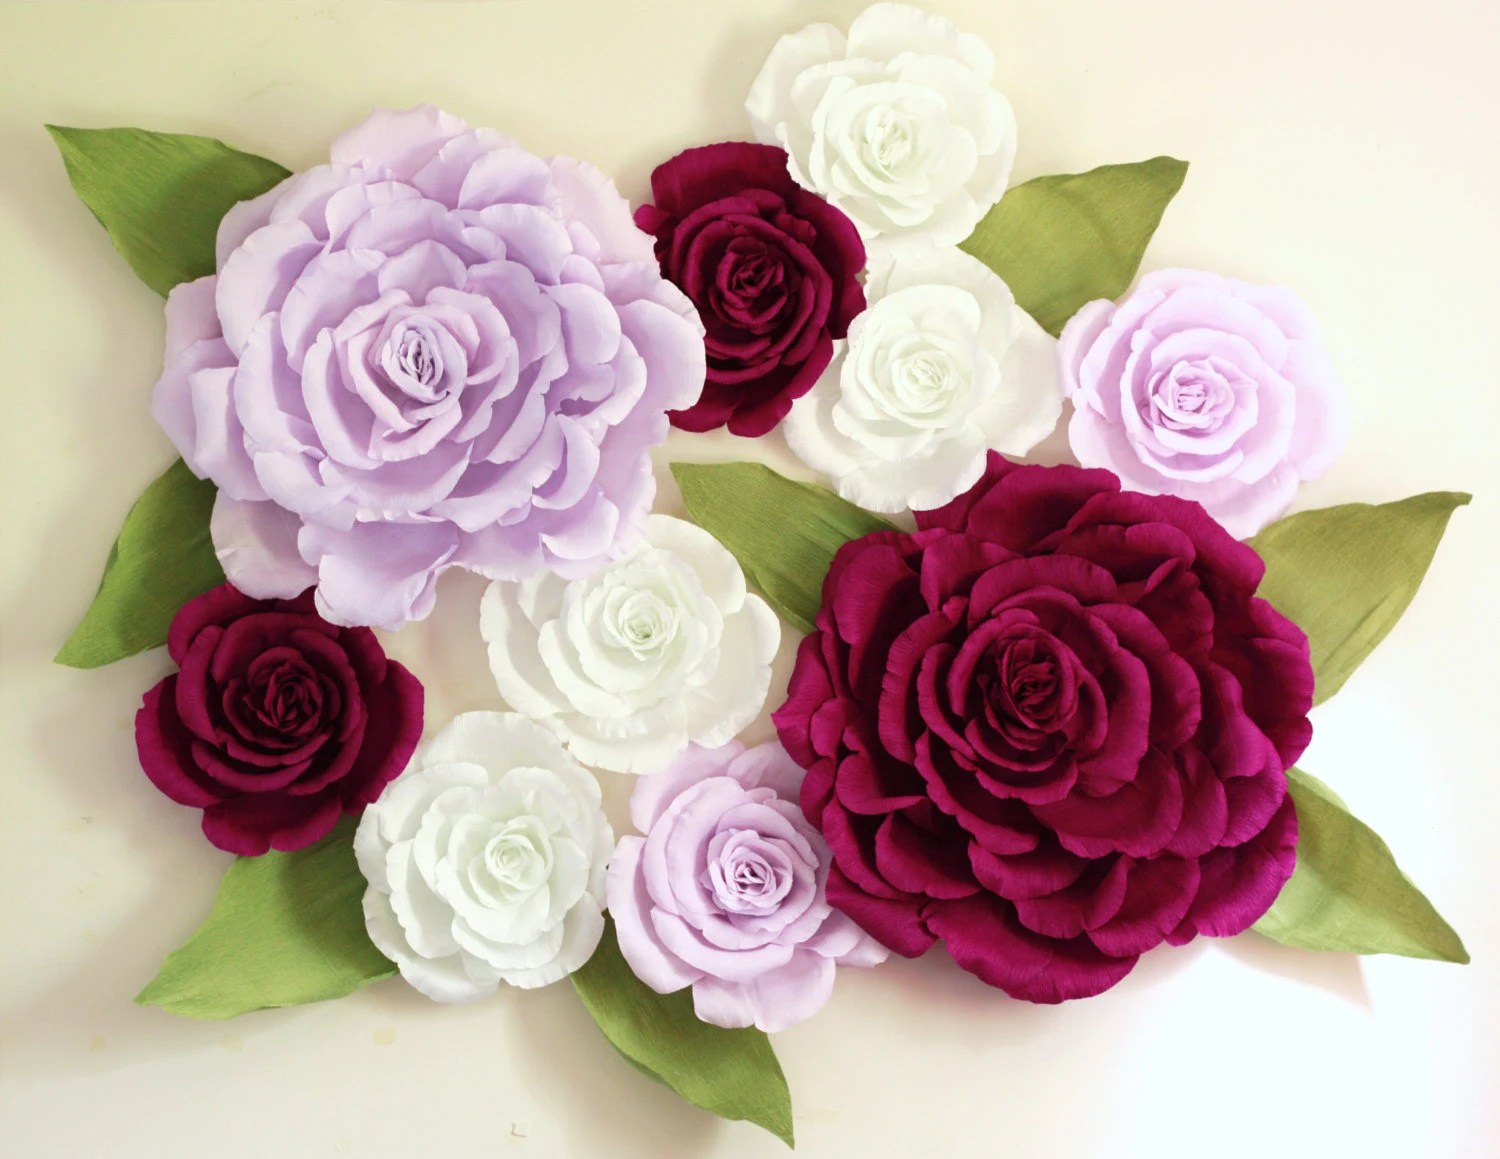 Giant Paper Flower Wall Display 5ft X 5ft Purple Wedding